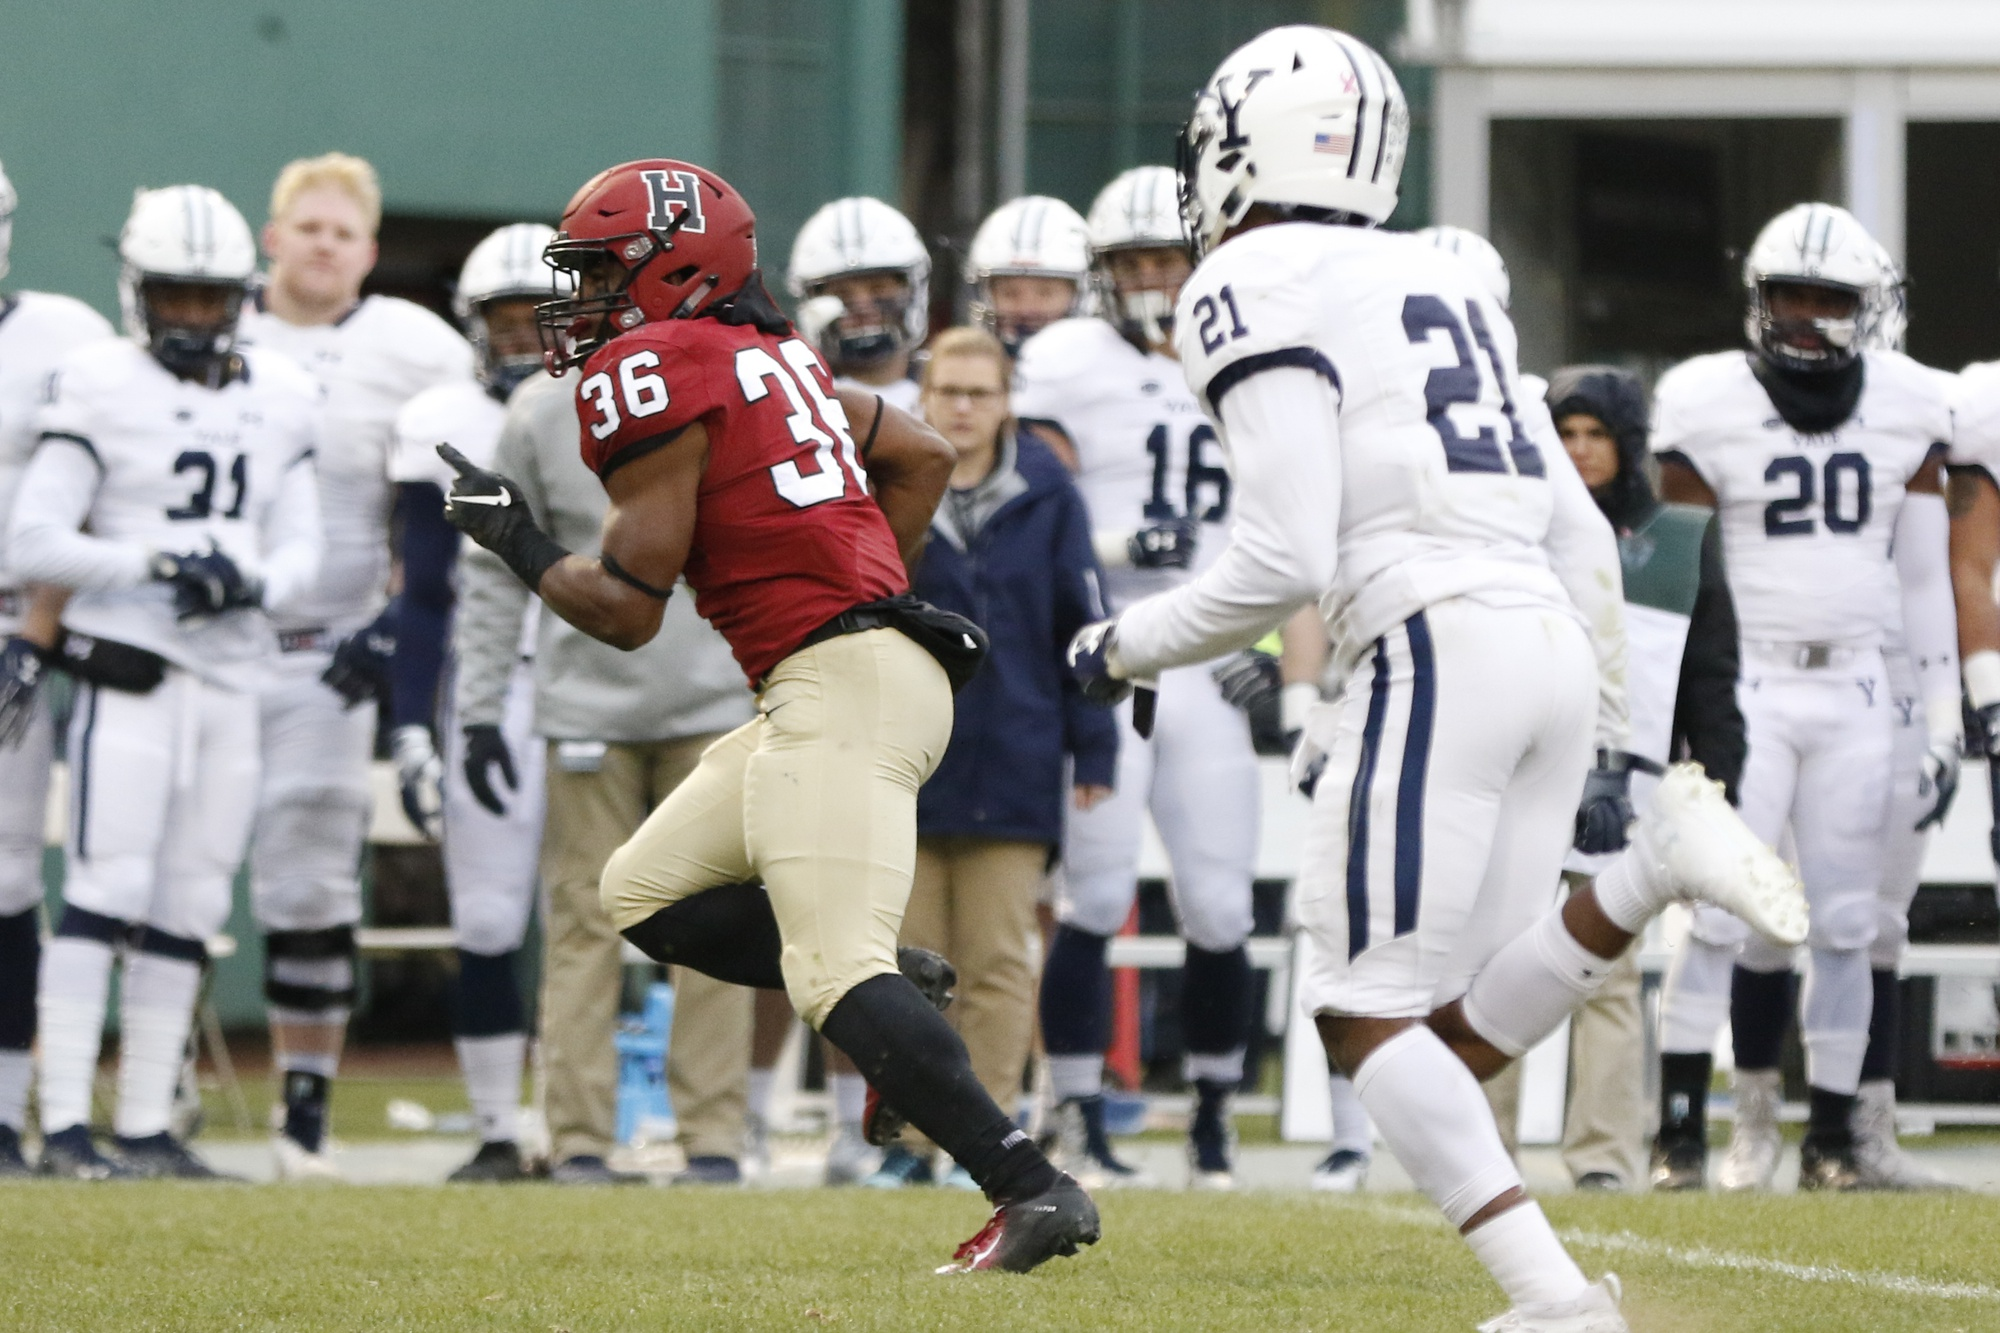 Harvard can finish no better than fourth to conclude the season.